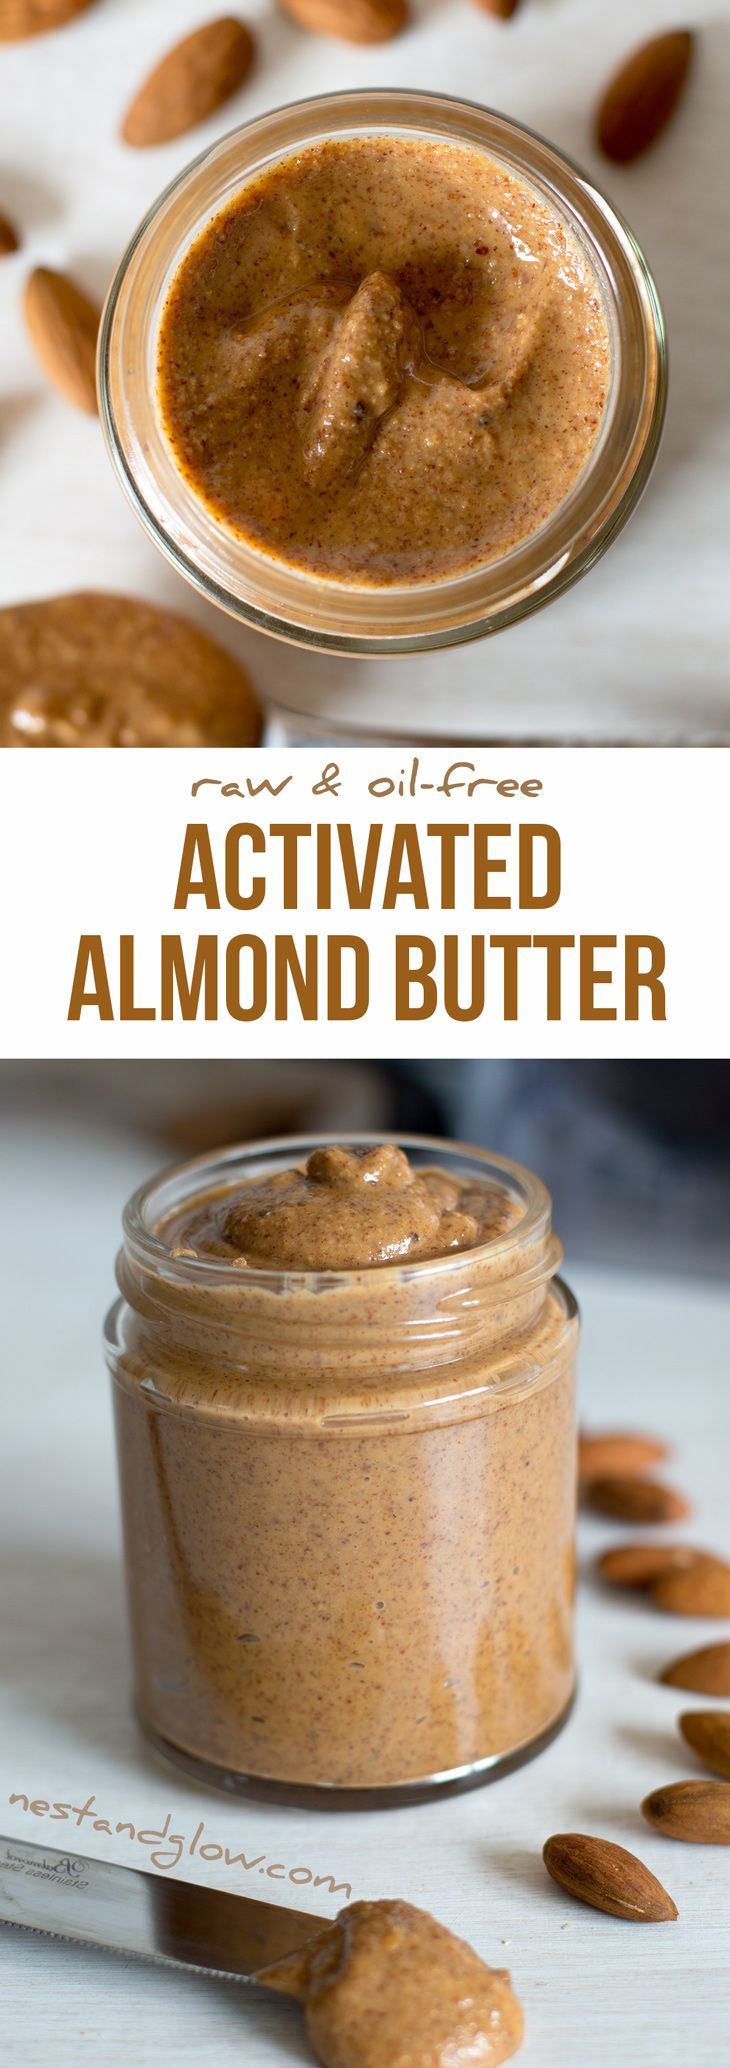 Activated Sprouted Almond Butter Recipe - Oil-free and Raw via @nestandglow